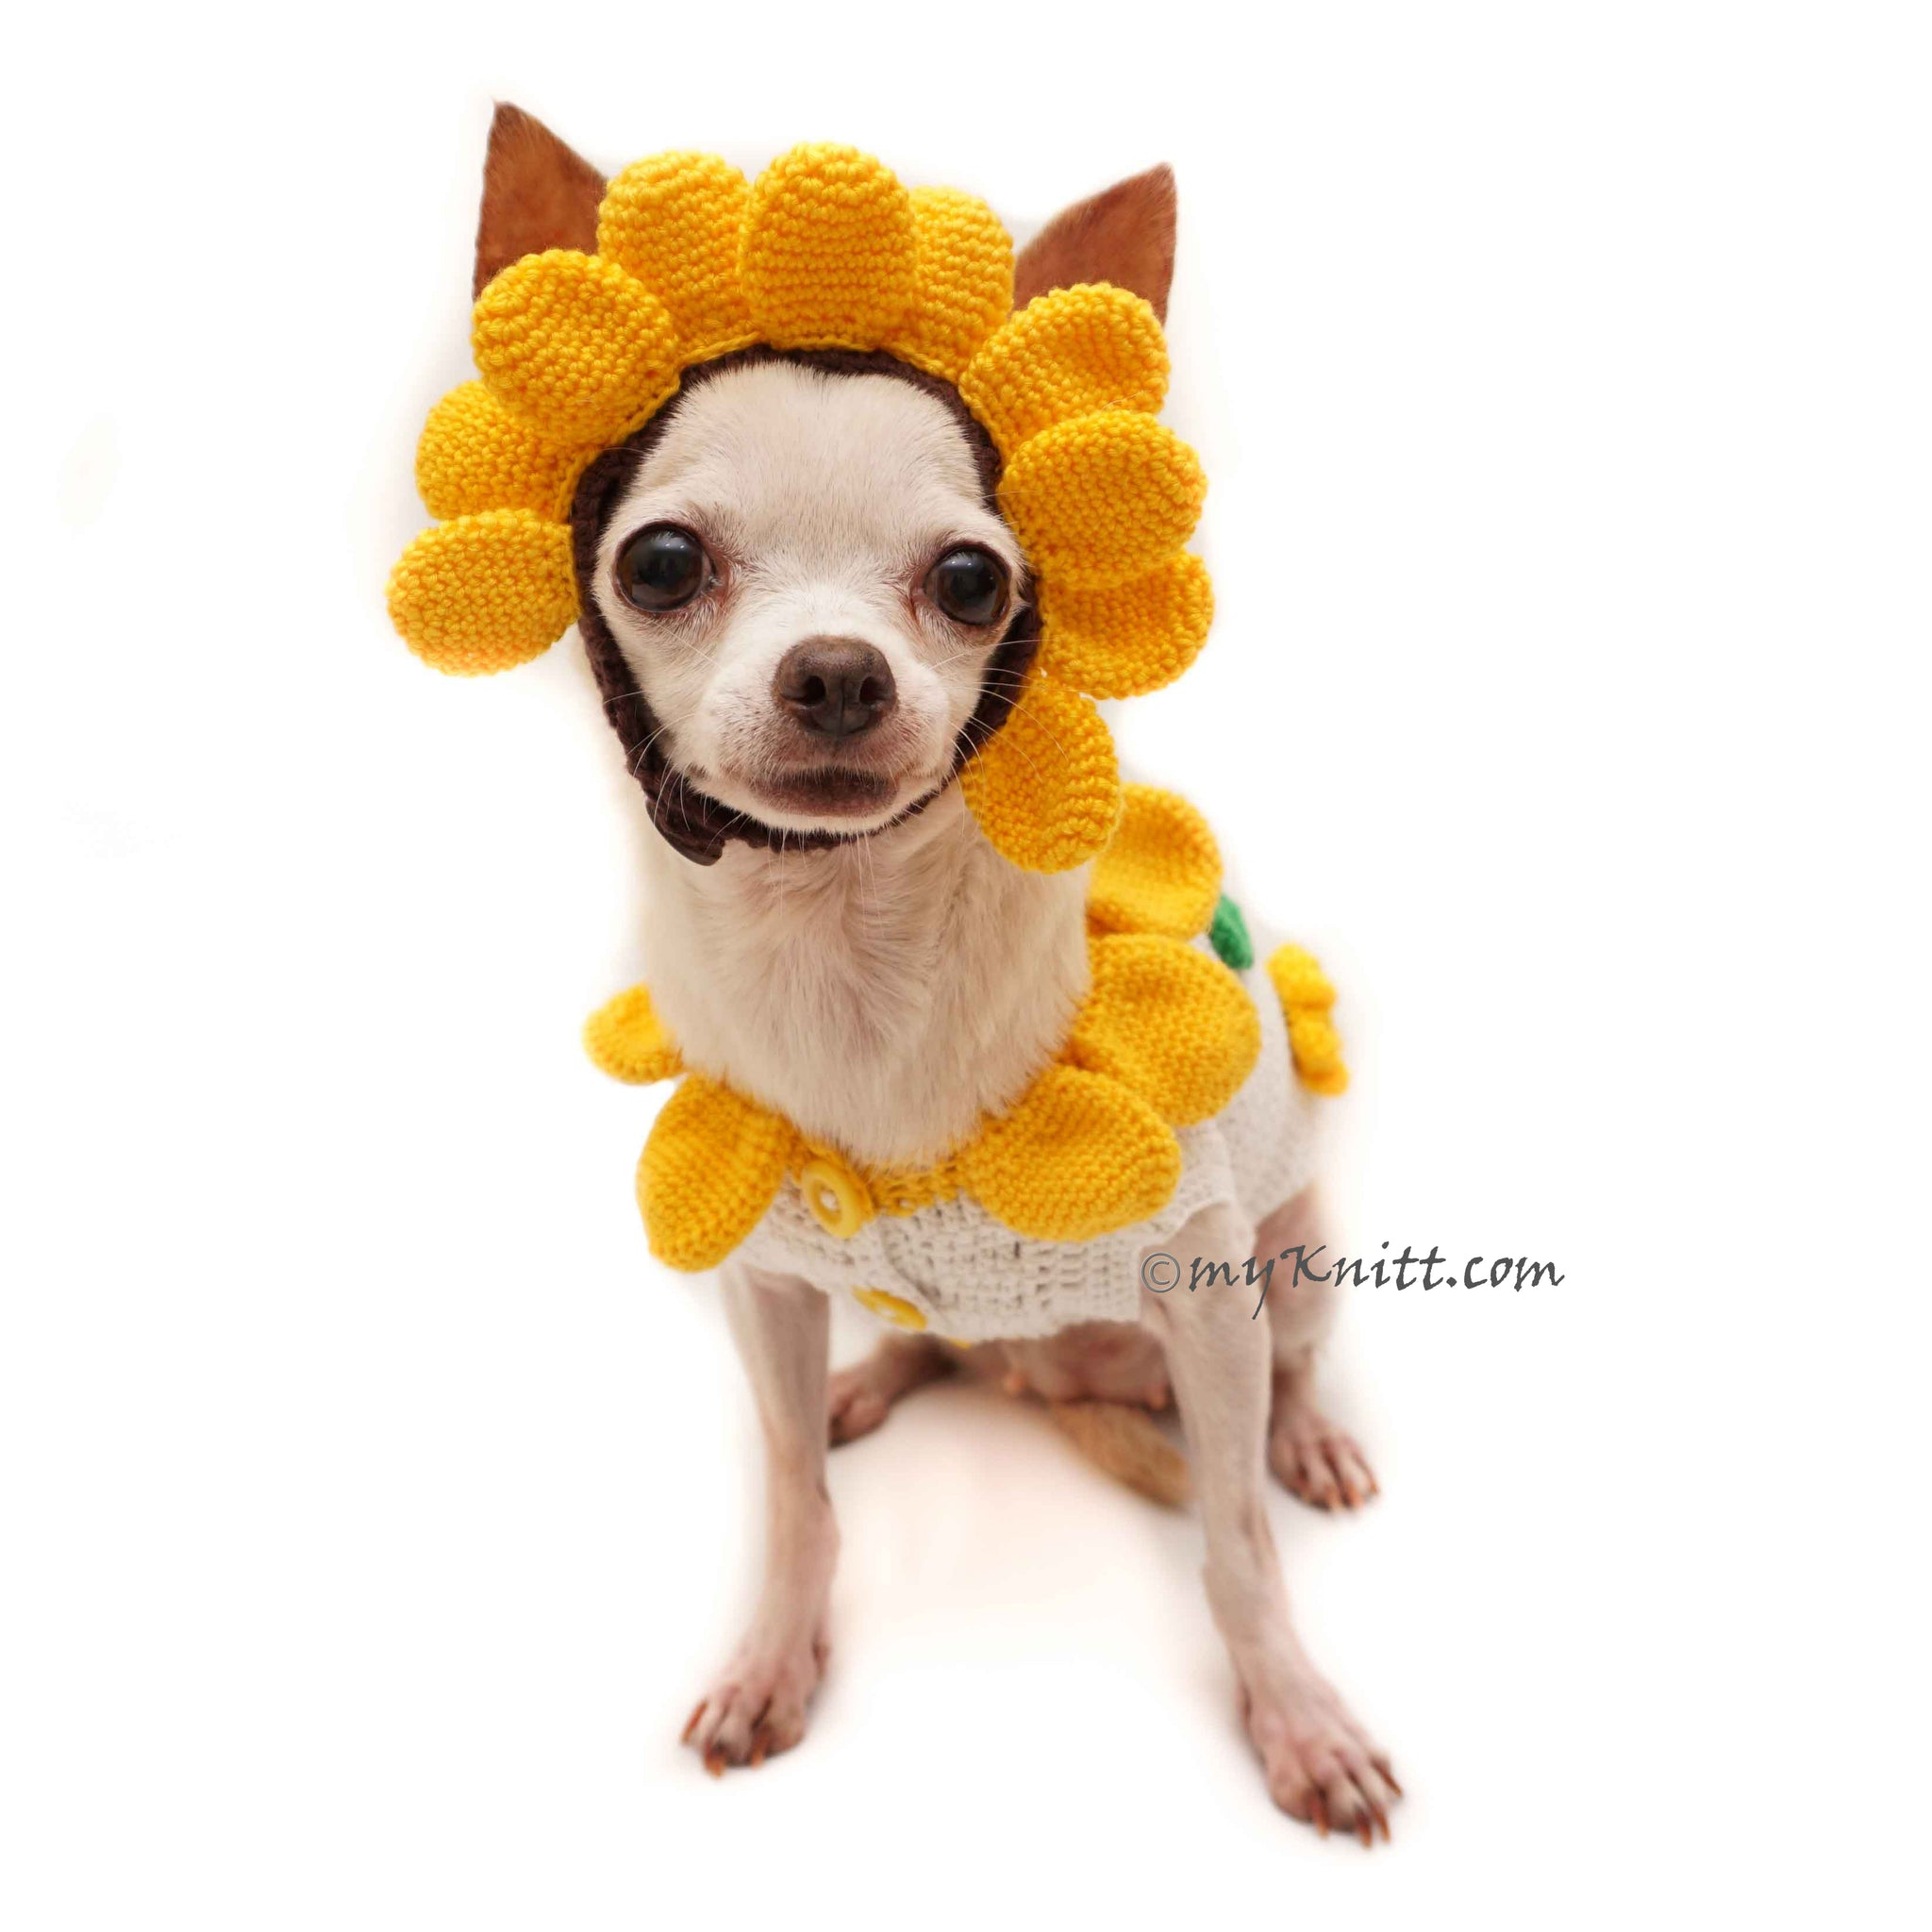 Sunflower Costume for Dogs Cute Pet Halloween Costume DF94  sc 1 st  Myknitt.com & Sunflower Costume for Dogs Cute Pet Halloween Costume DF94 | myknitt